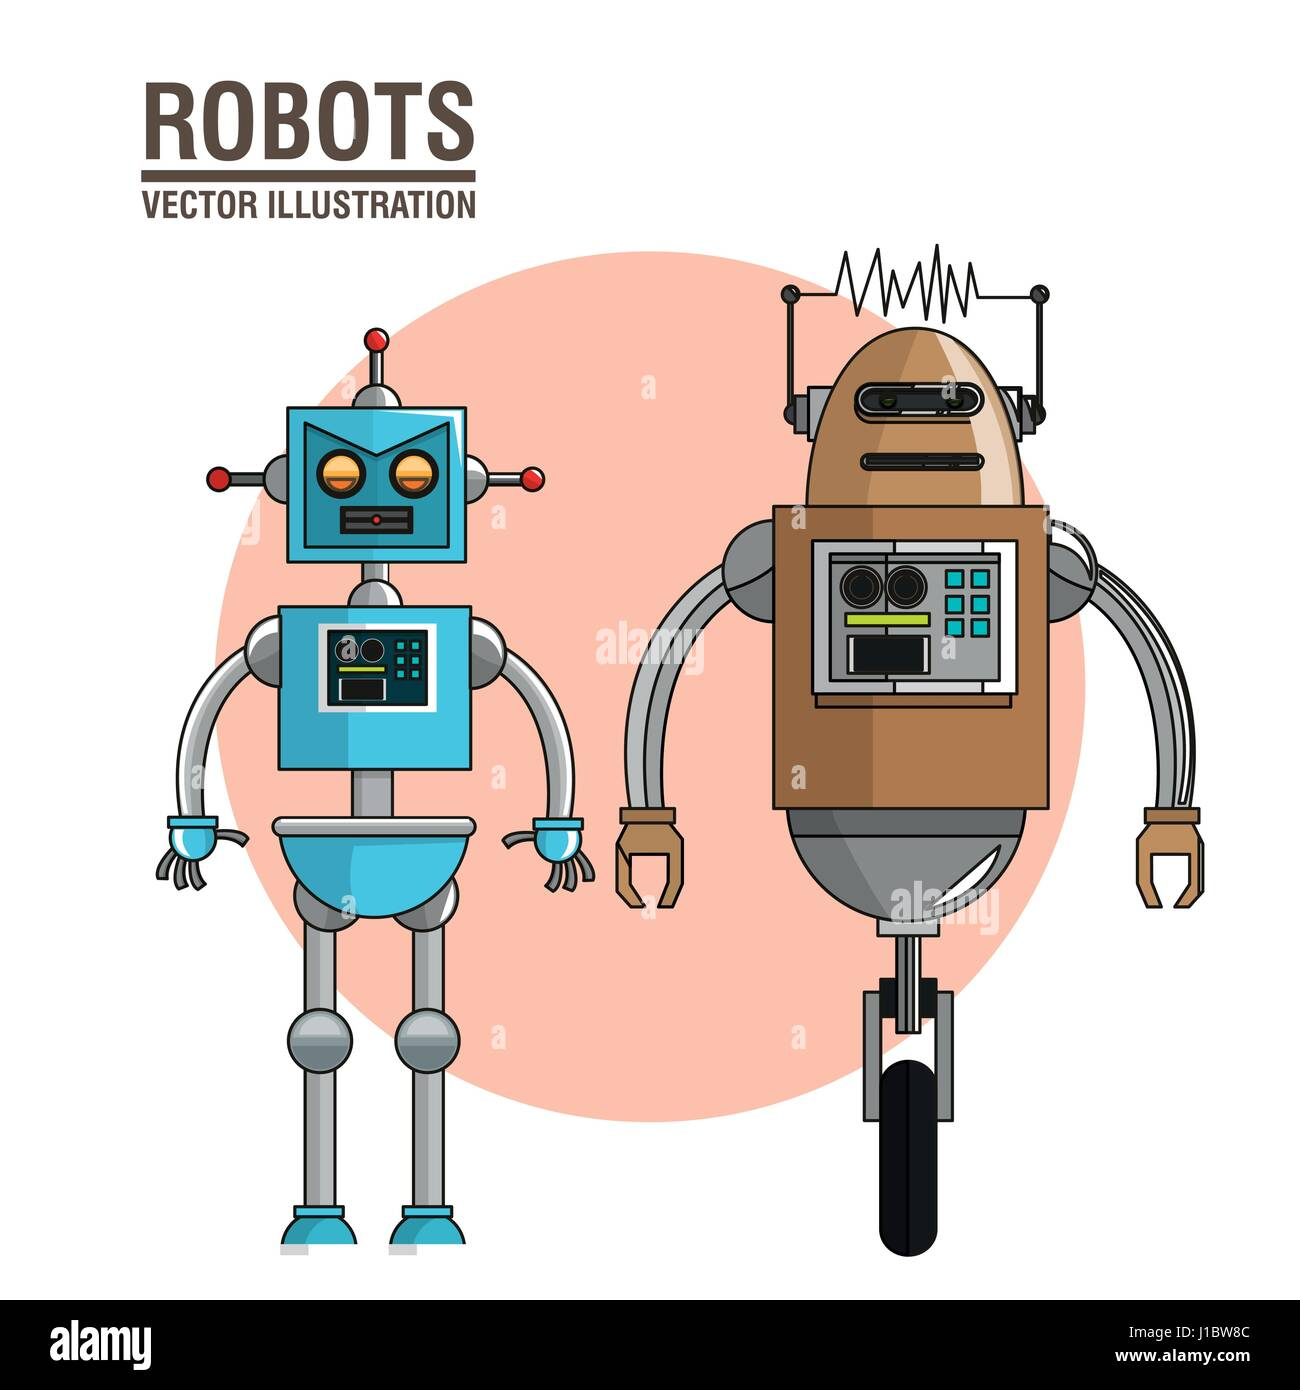 robots technology future image Stock Vector